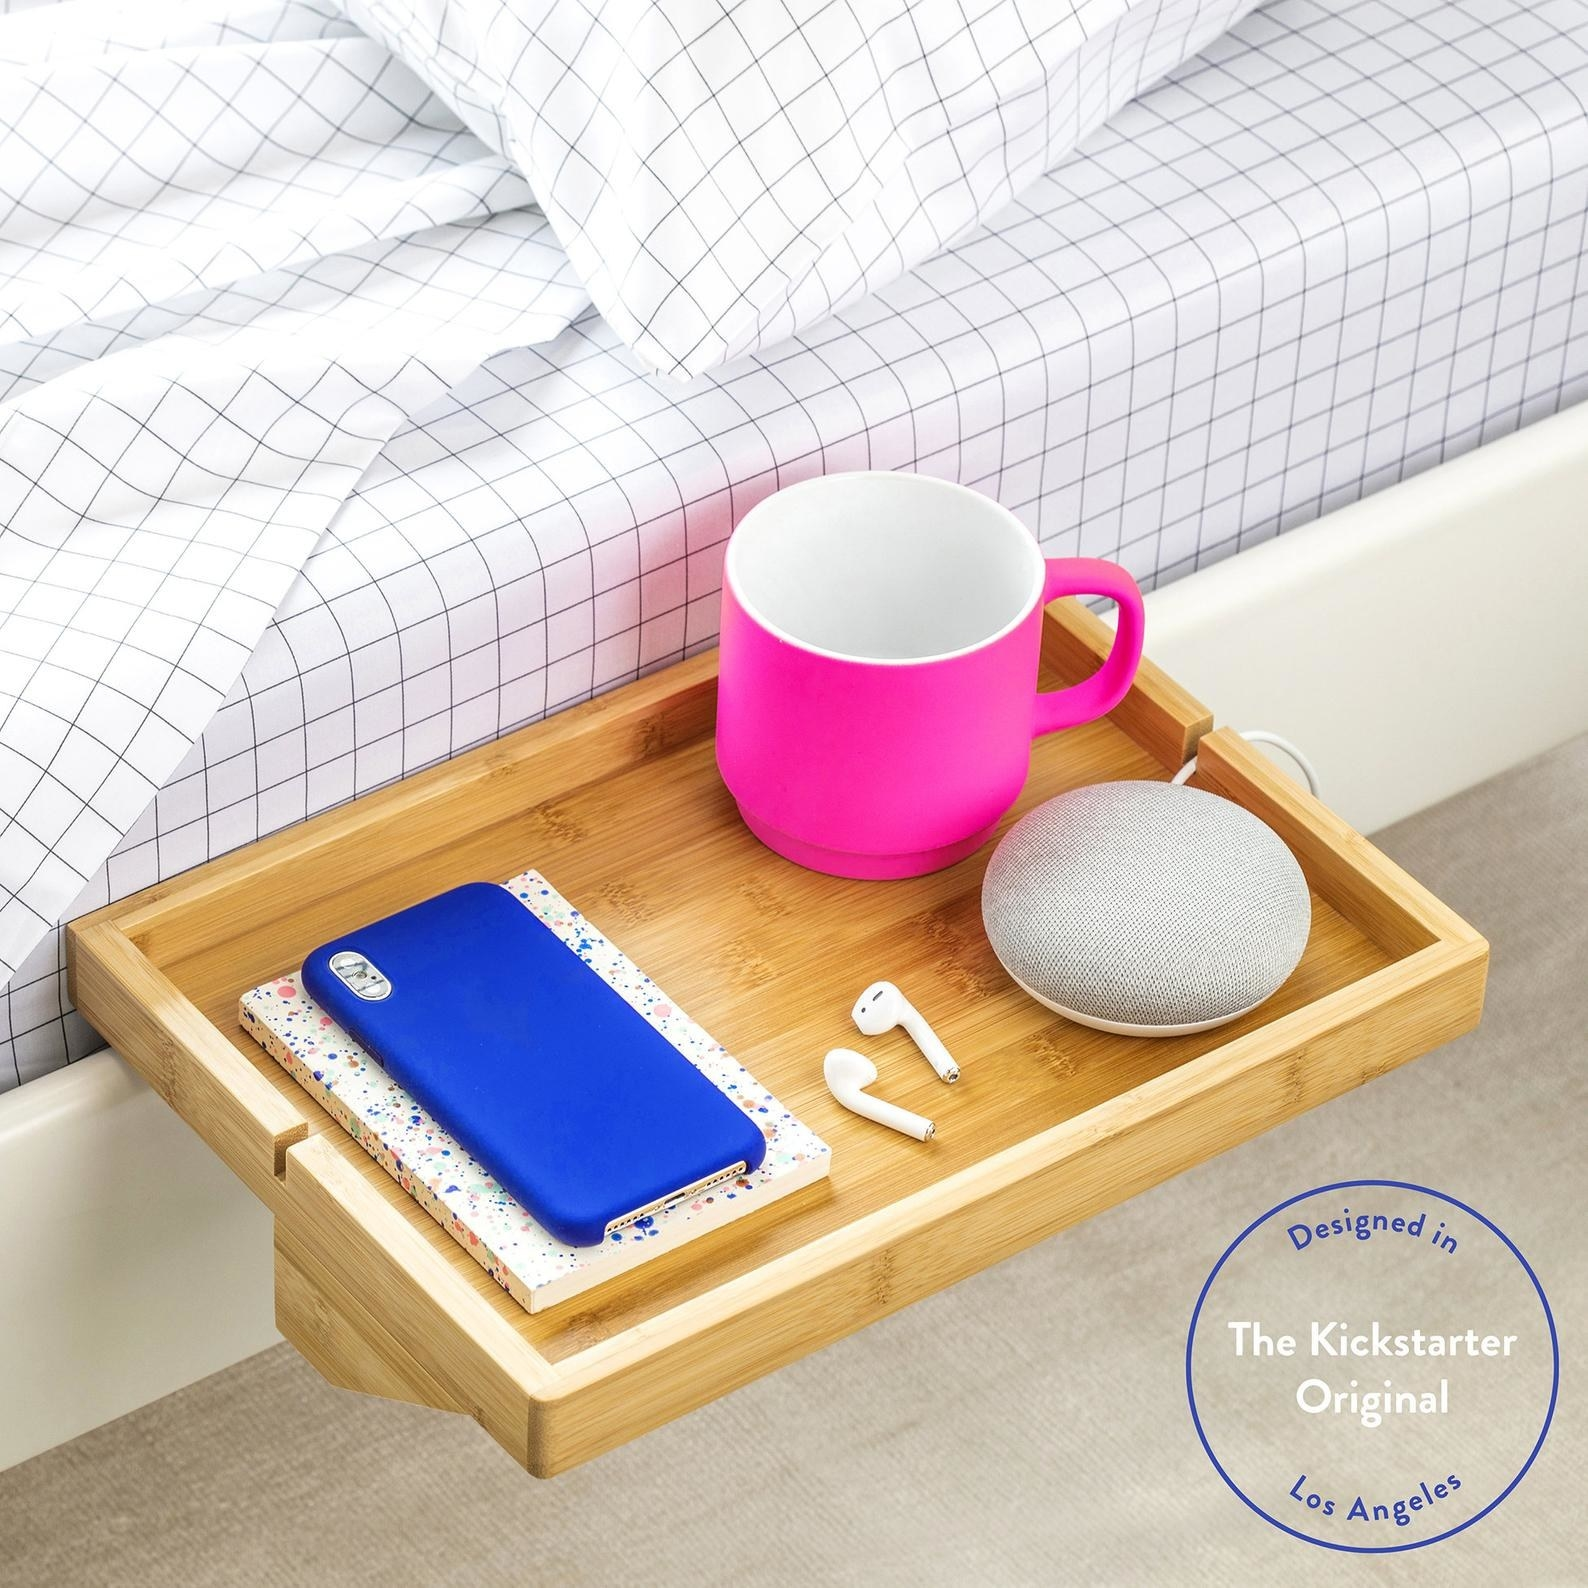 side of bed with simple shelf on the bed frame holding phone, speaker, coffee mug